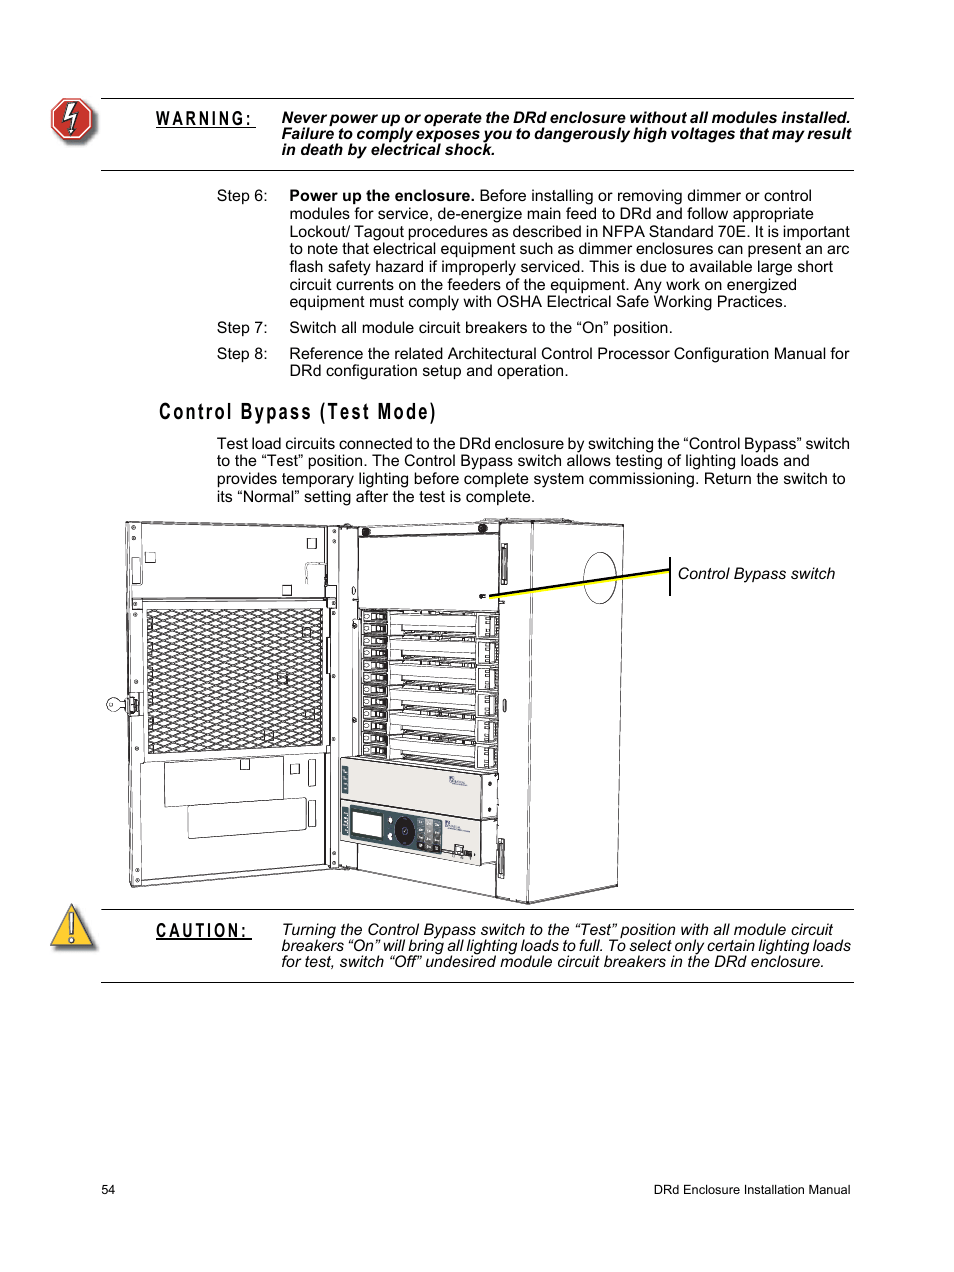 hight resolution of control bypass test mode etc unison drd dimming rack enclosure user manual page 58 68